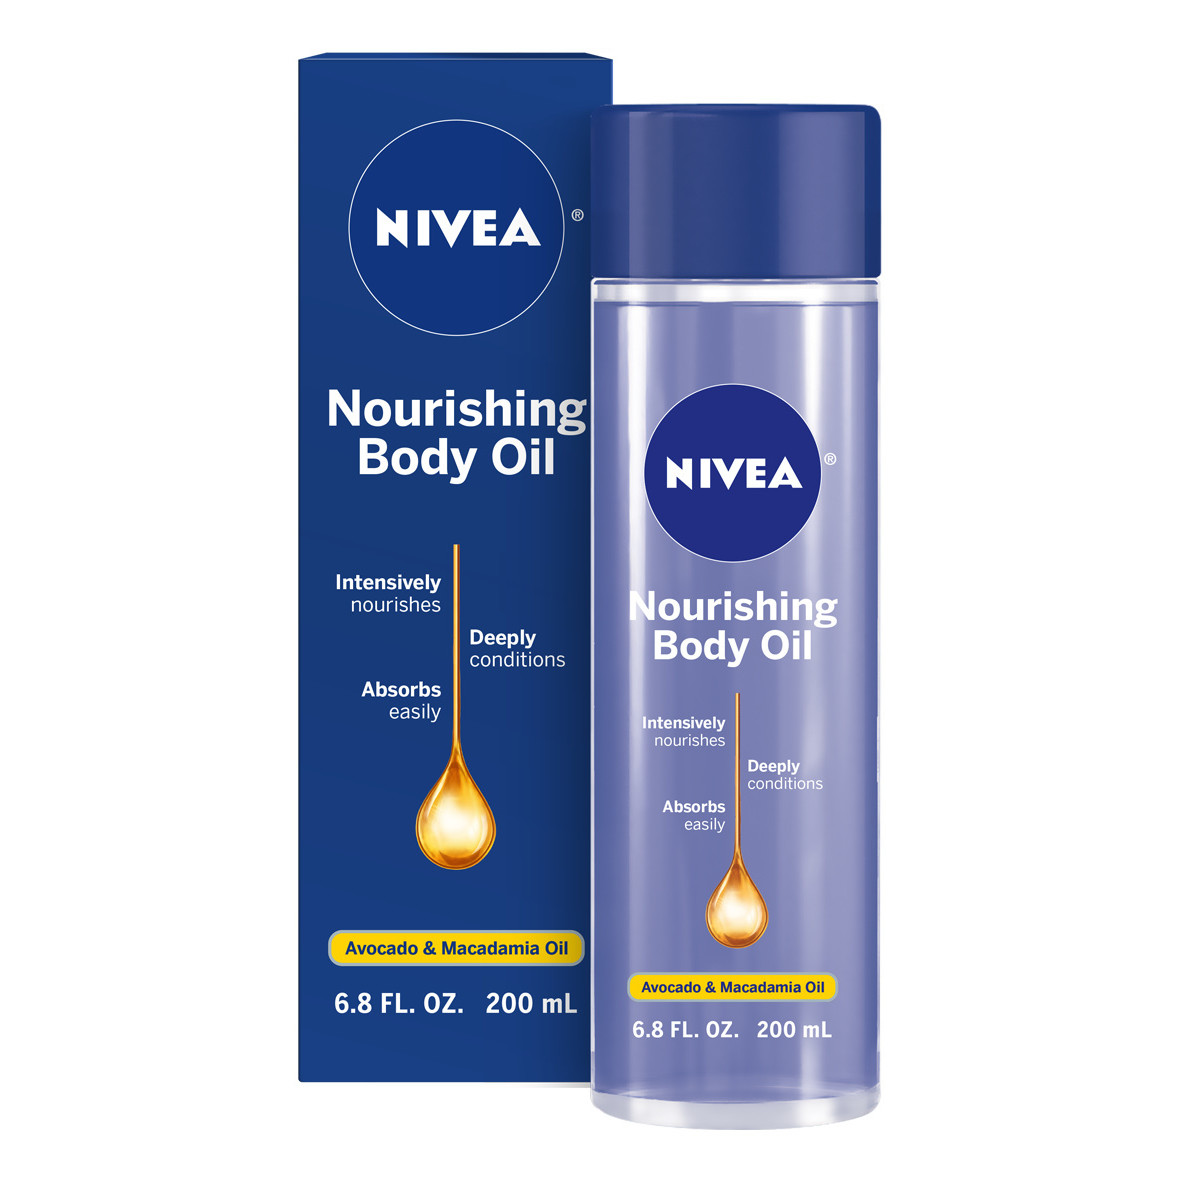 NIVEA Nourishing Body Oil 6.8 fl. oz.